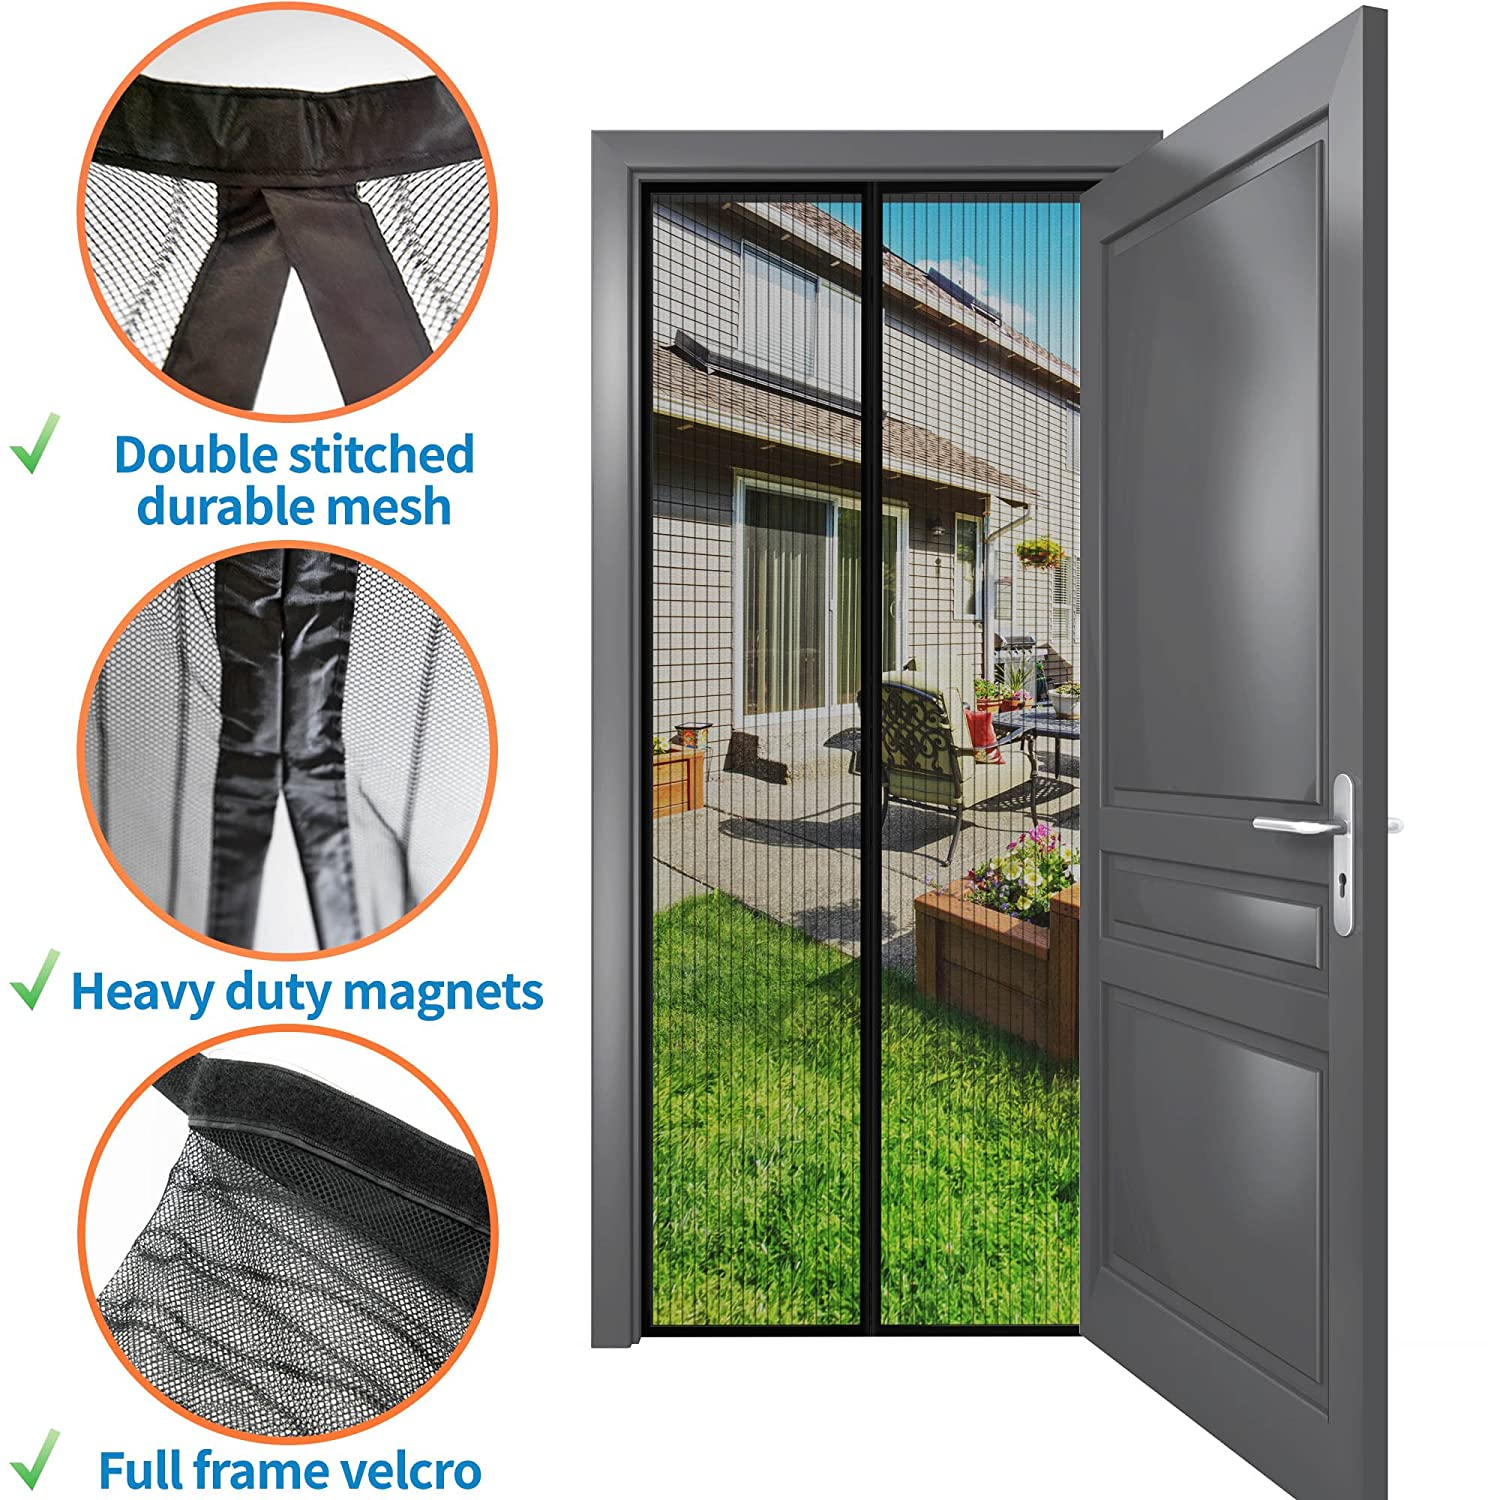 Omt High Quality Magnetic Screen Door 34x 82 No More Bug